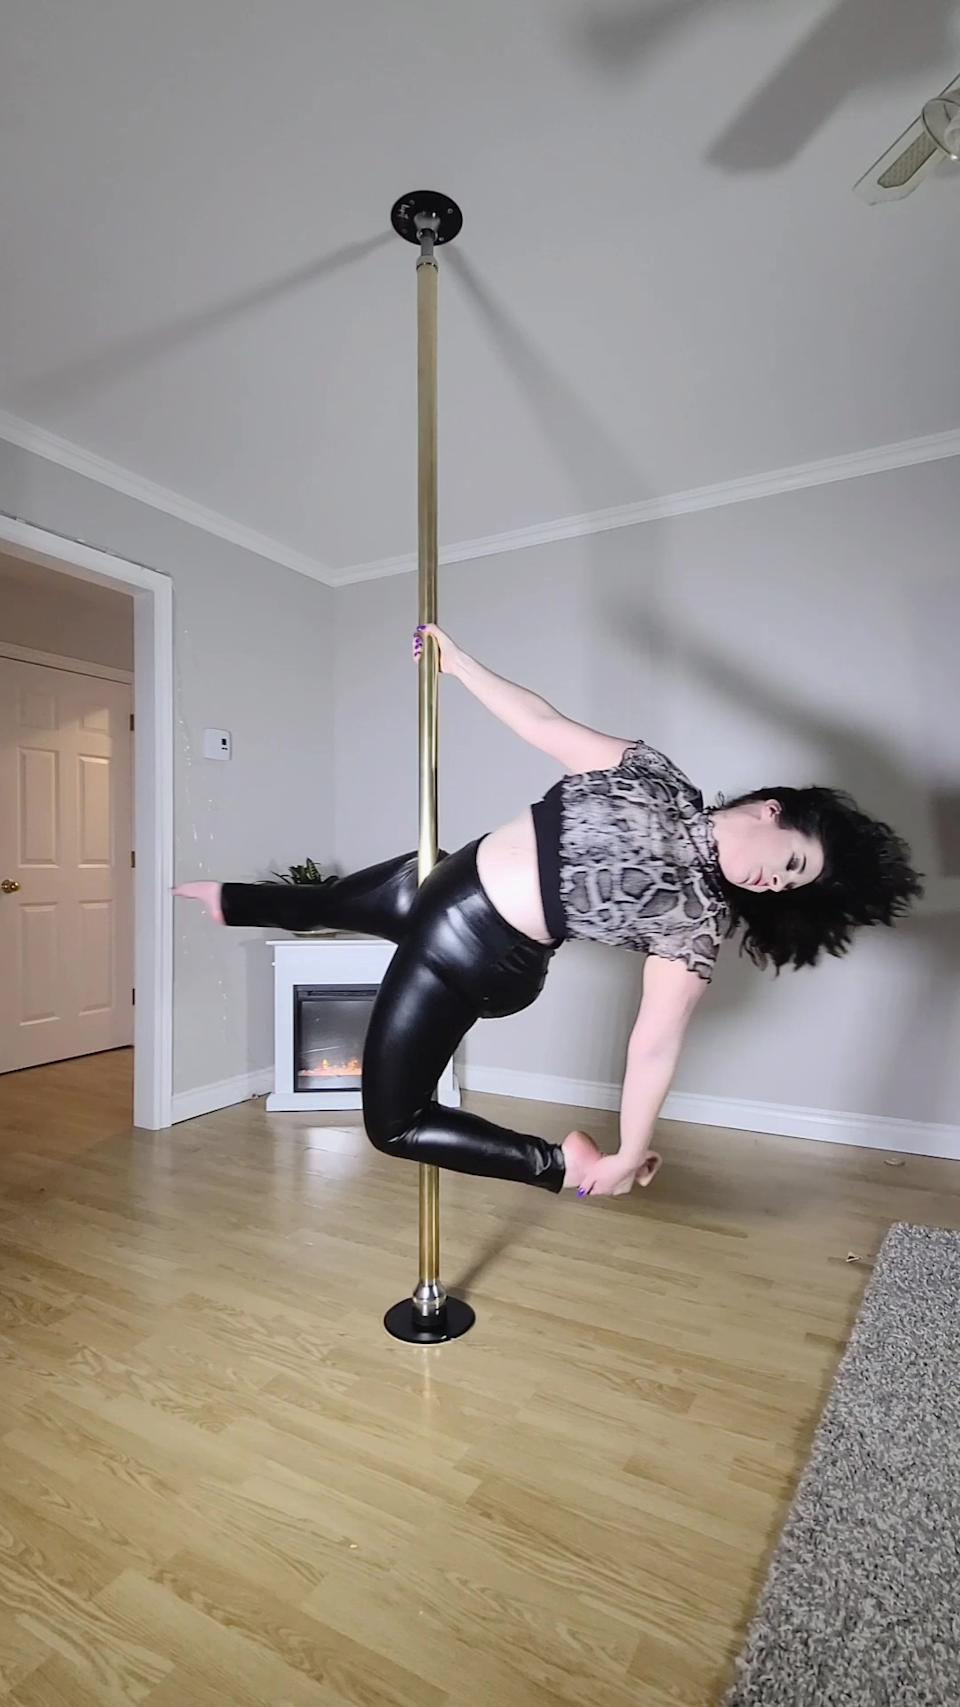 jessica uses pole dancing for weight loss